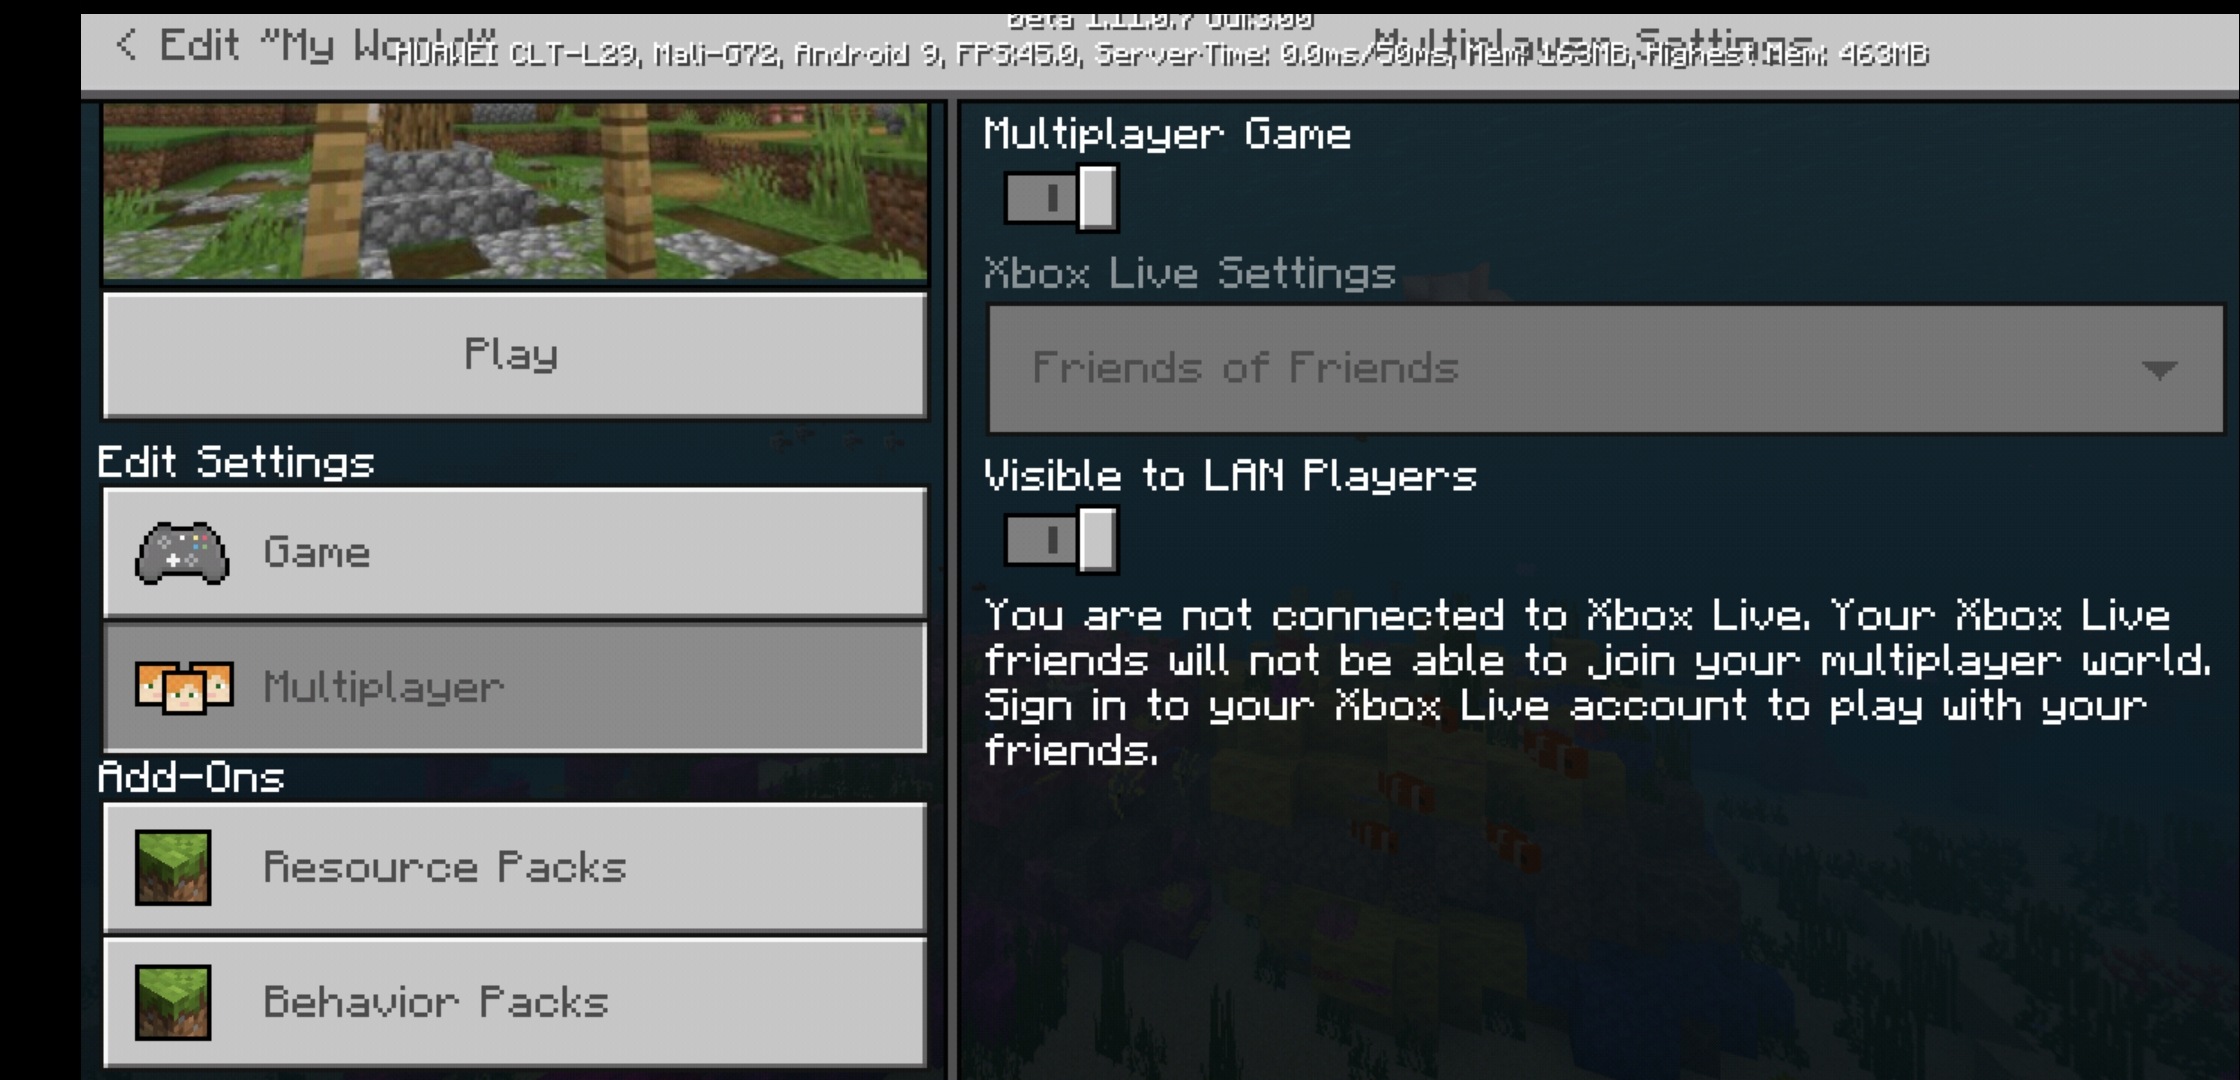 MCPE 43626 Android: The multiplayer gameplay continually switches